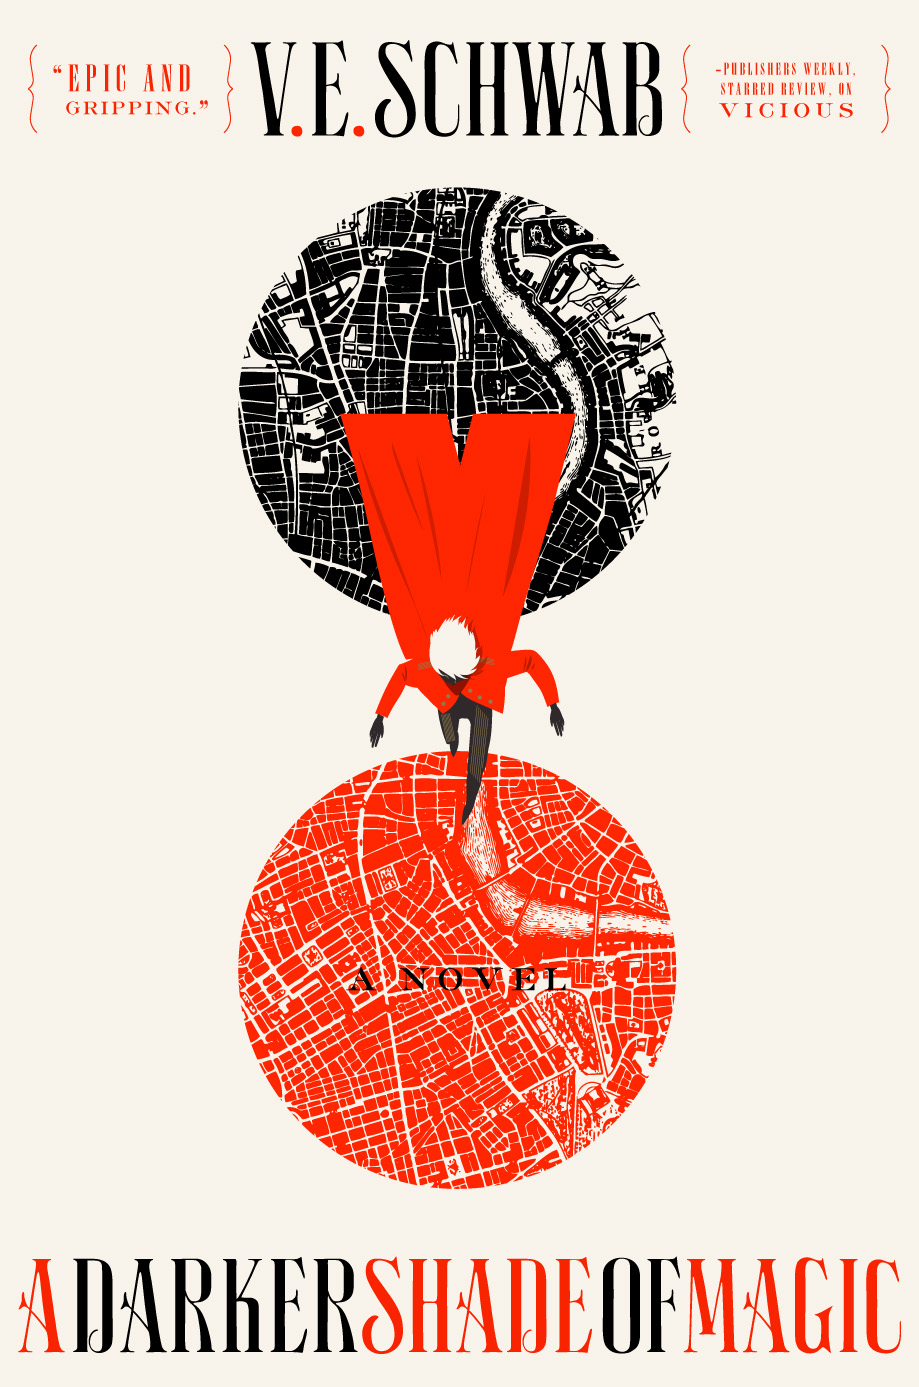 A Darker Side of Magic by V.E. Schwab